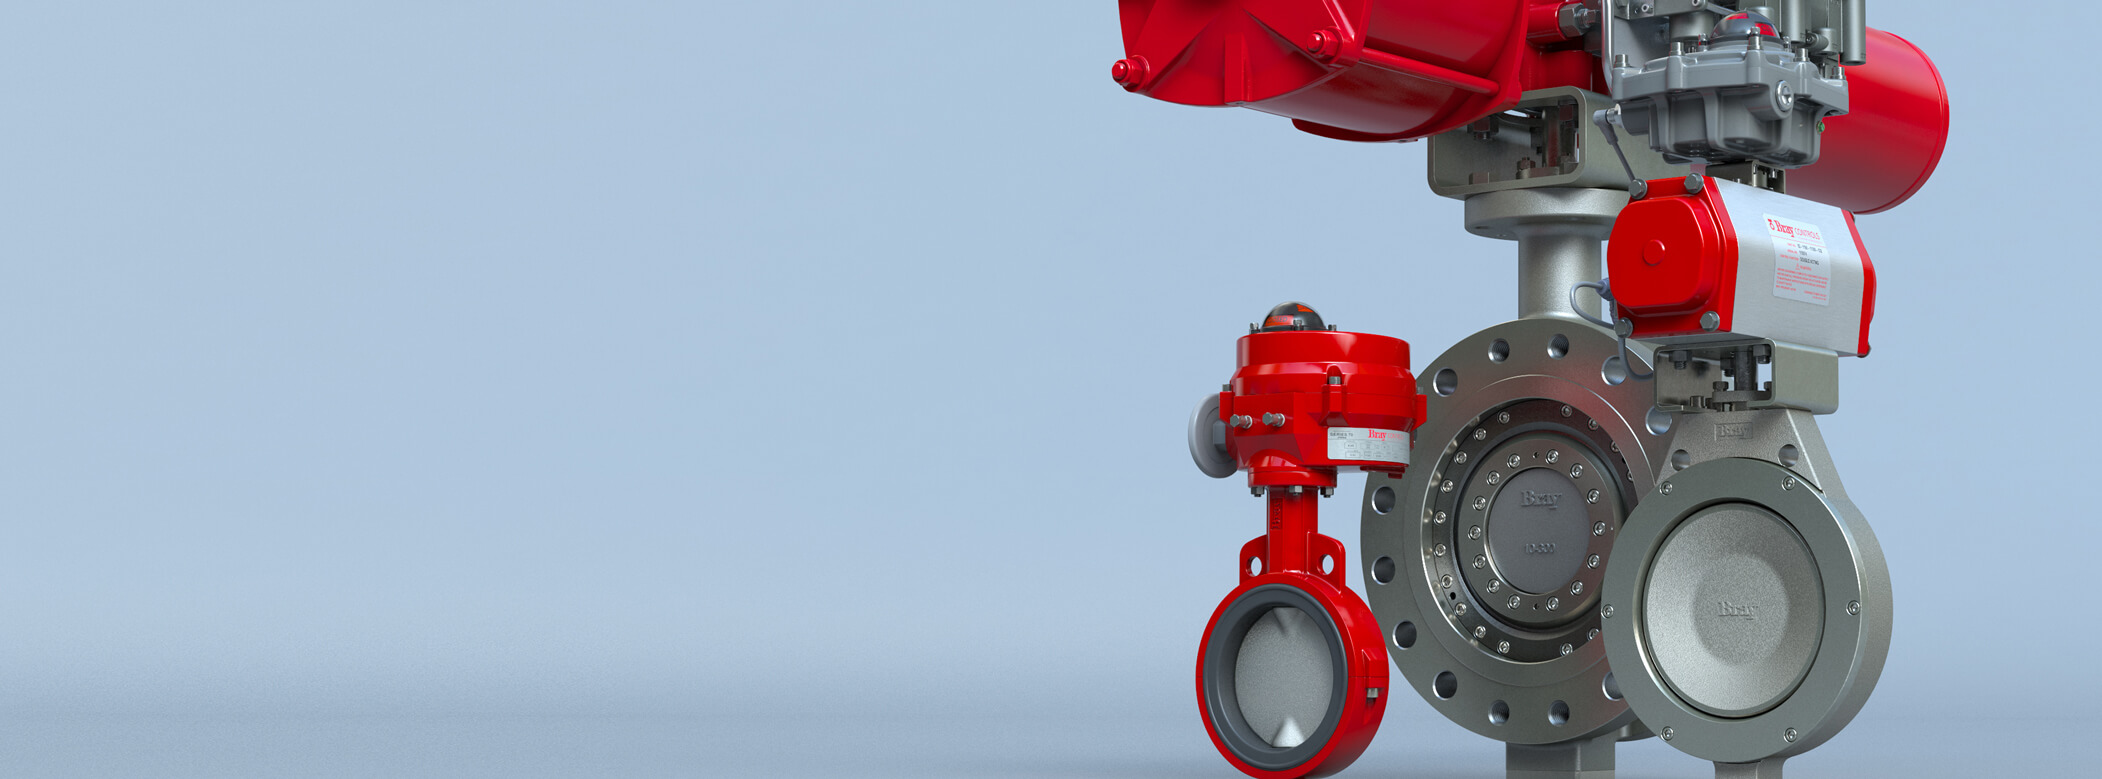 Butterfly Valves Bray International